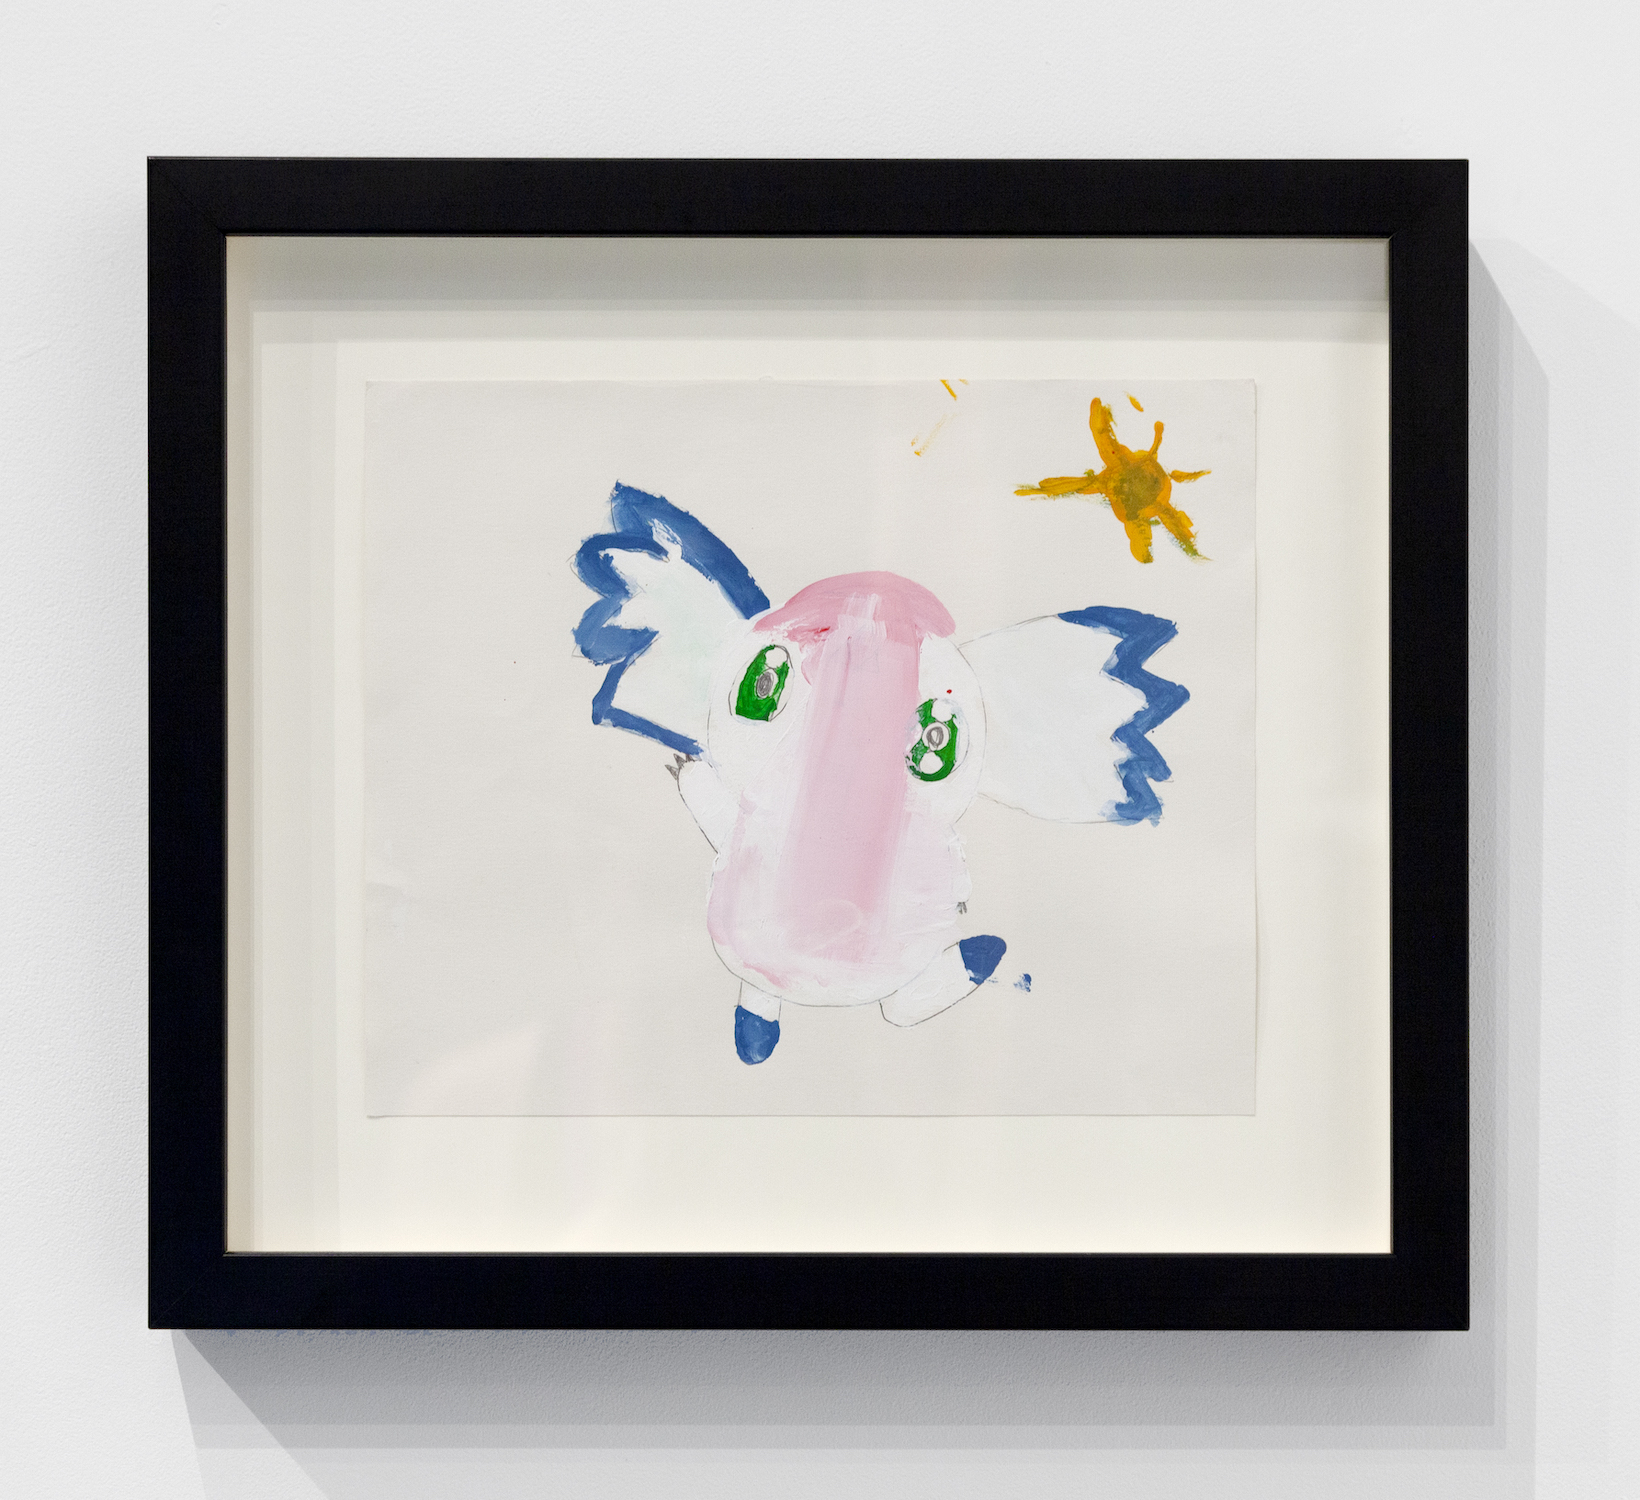 Alexandra Gepp,  Dream Doudou , 2014, Acrylic on paper, 12 x 13 inches (30.48 x 33.02 cm) framed